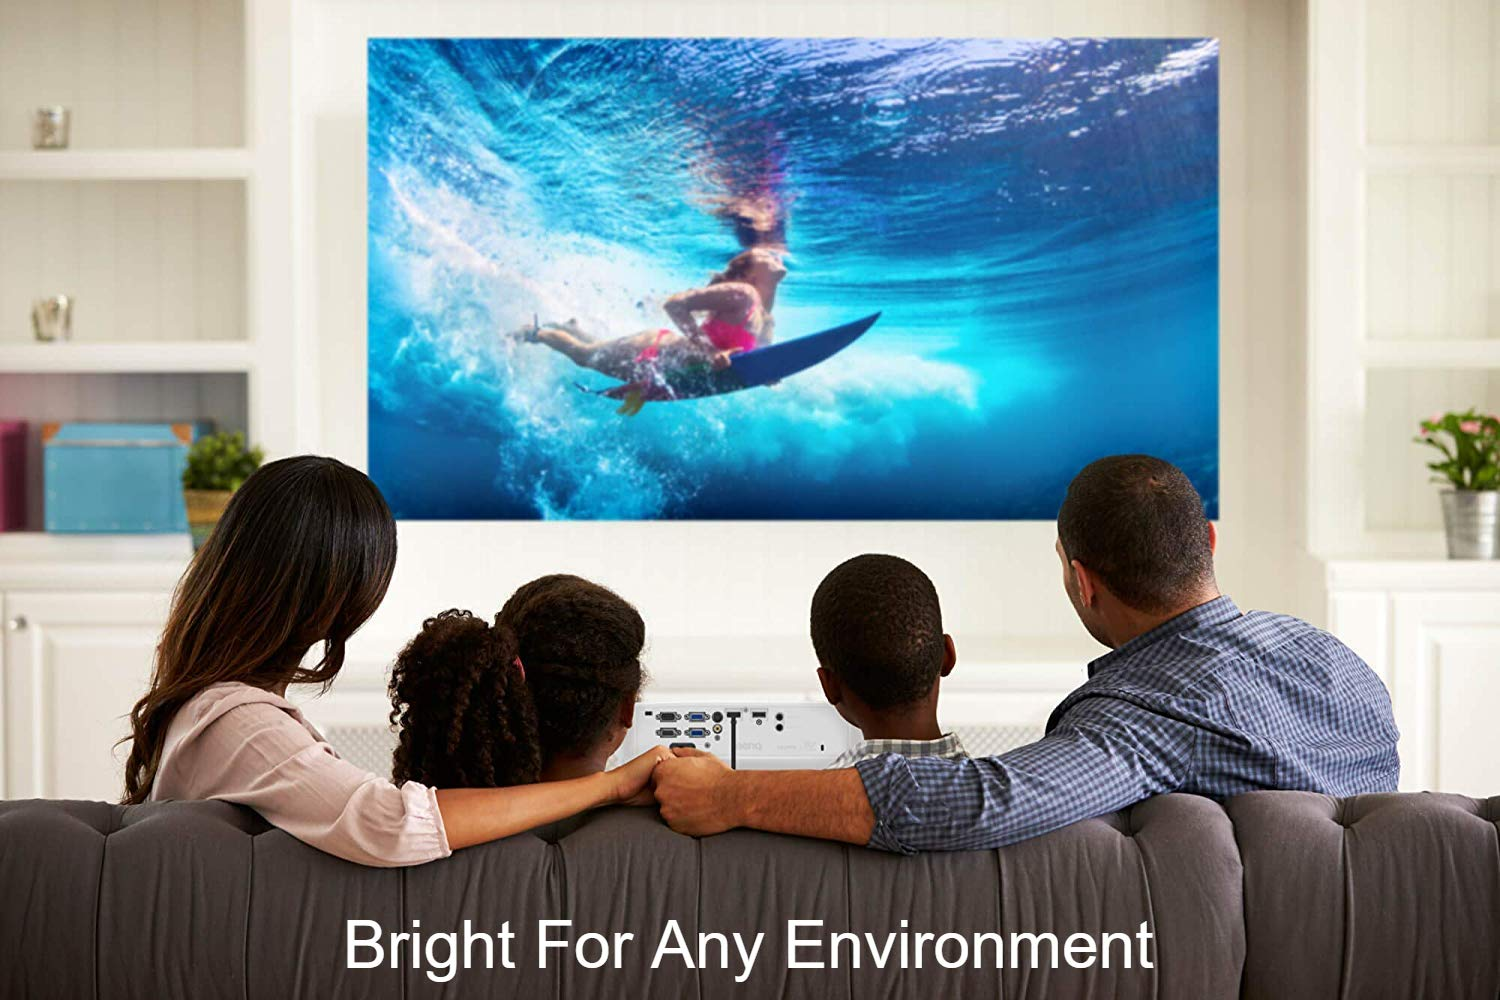 BenQ MS535A 1080p Supported SVGA 3600 Lumens HDMI Vibrant DLP Color Projector for Home and Office by BenQ (Image #3)